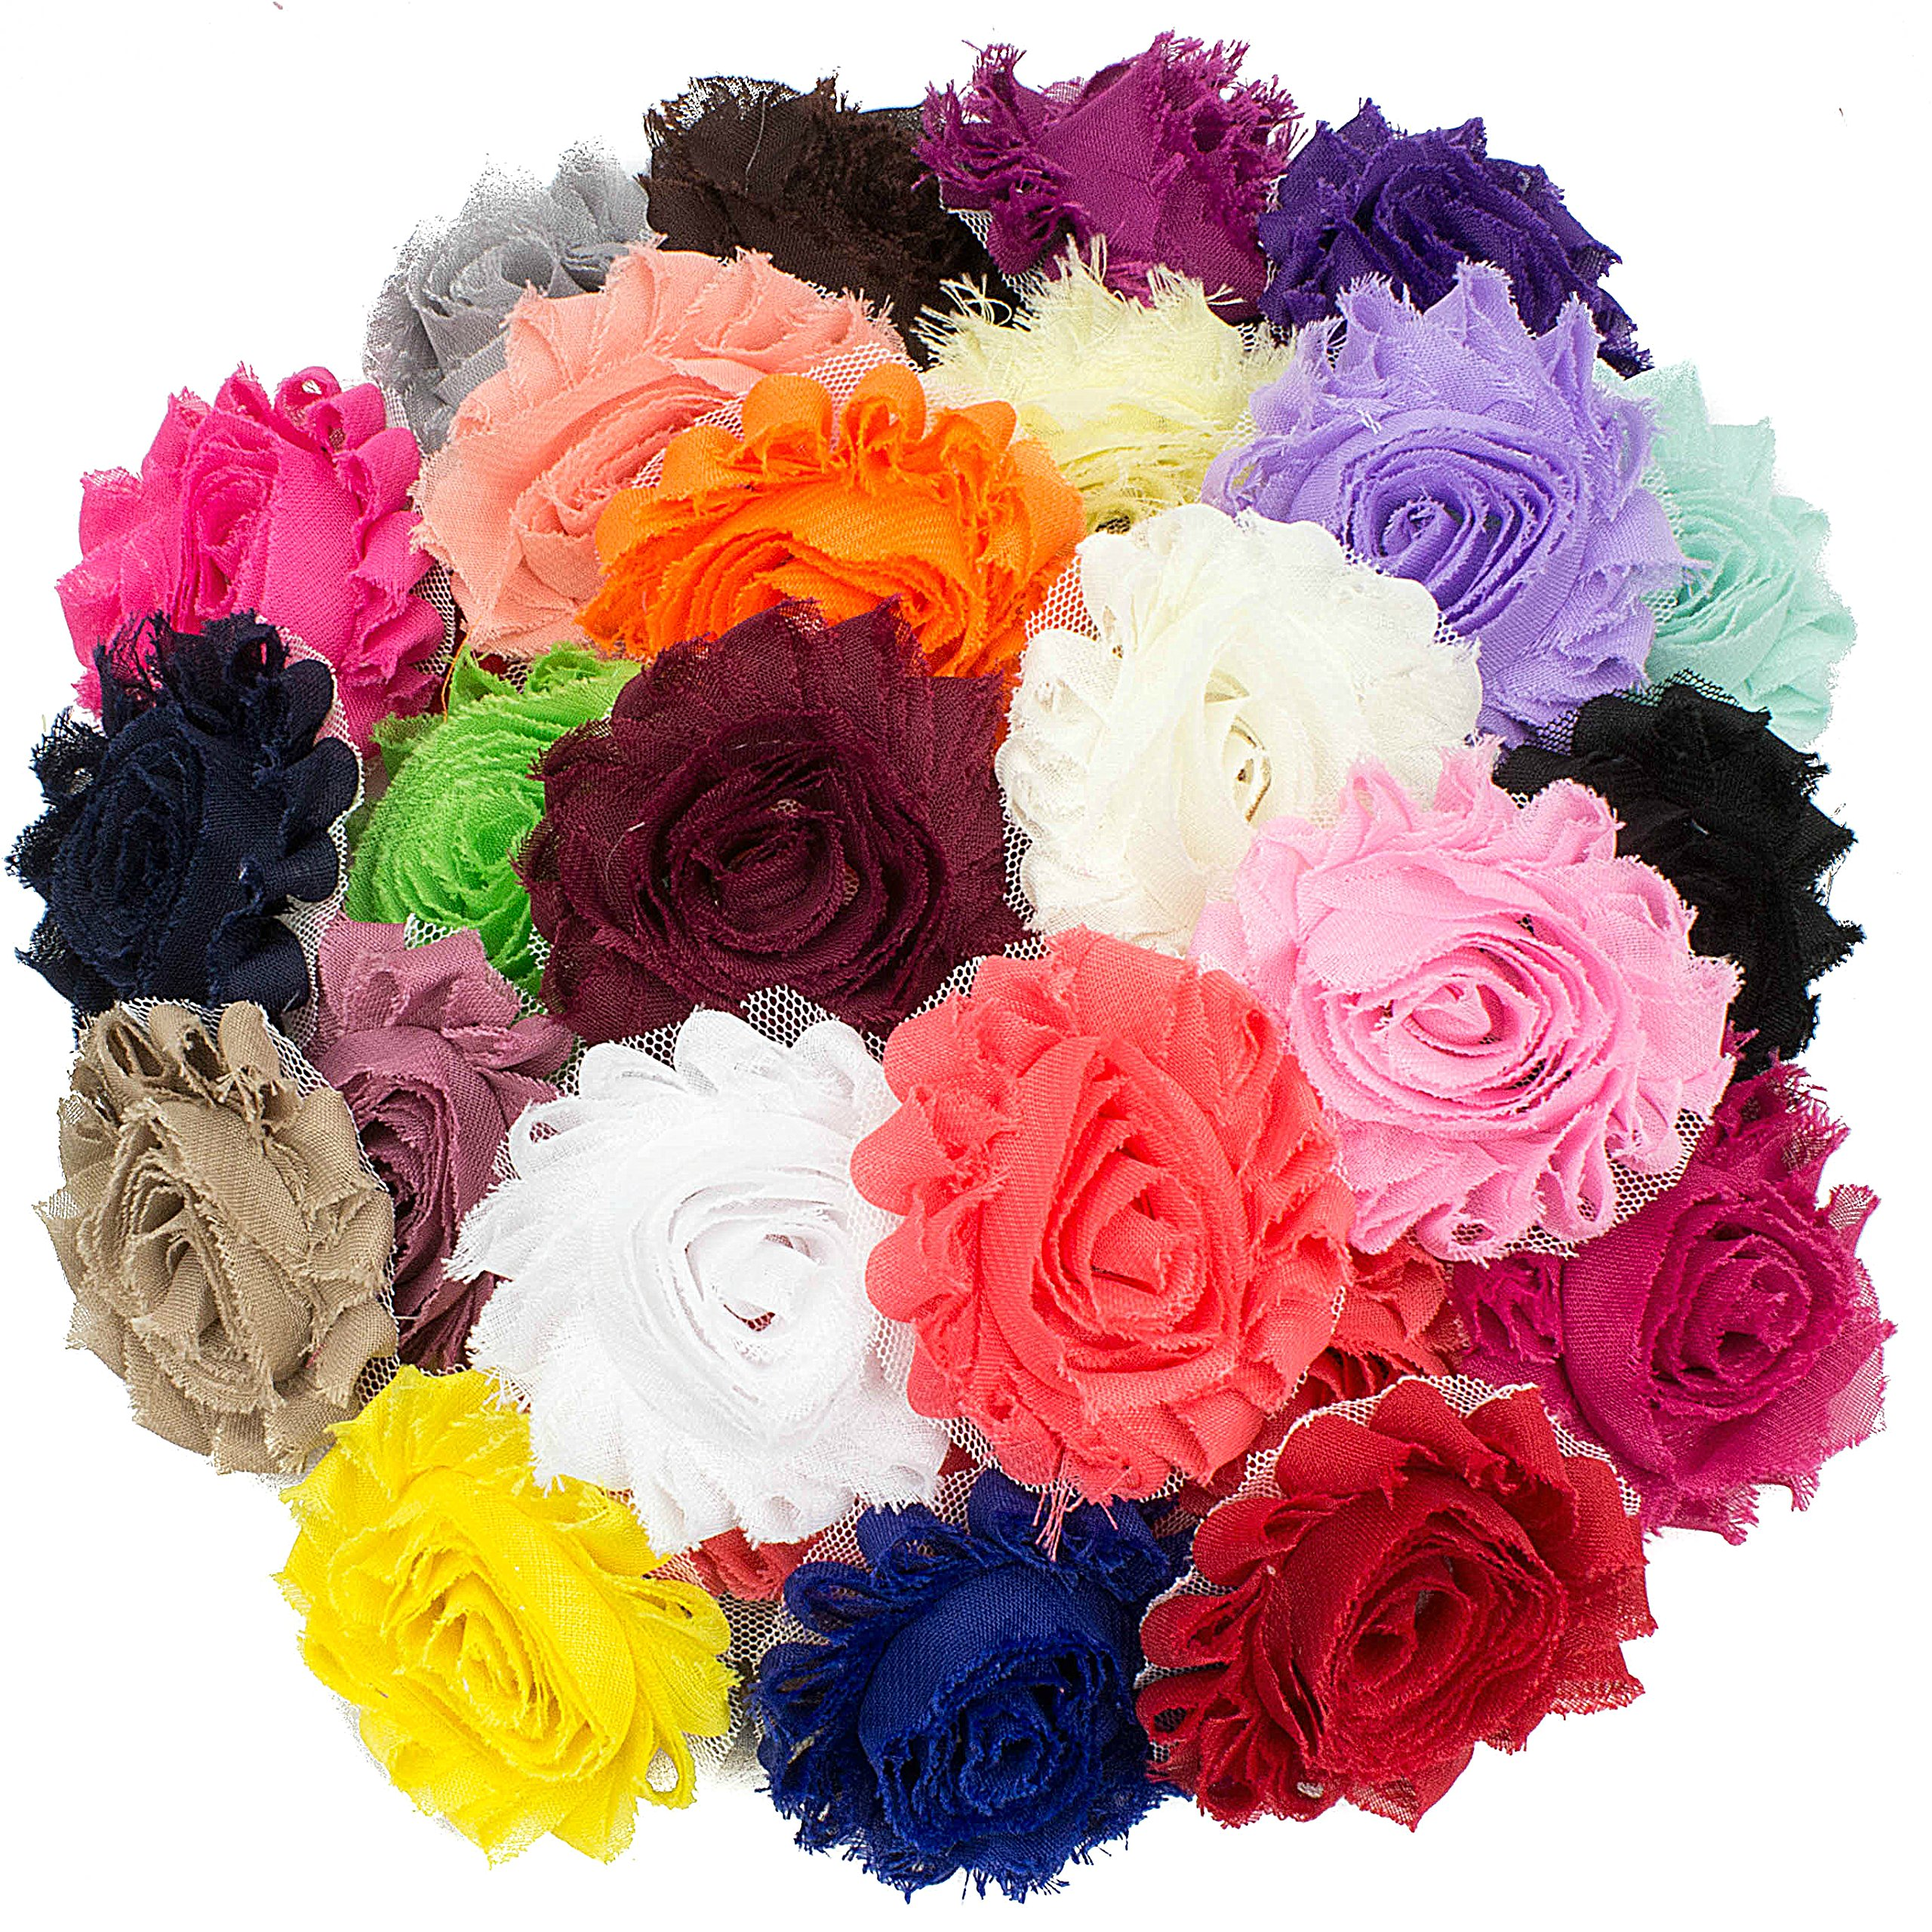 JLIKA 50 pieces Shabby Flowers - Chiffon Fabric Roses - 2.5'' - Solids Color Mix - Single Flowers Grab Bag